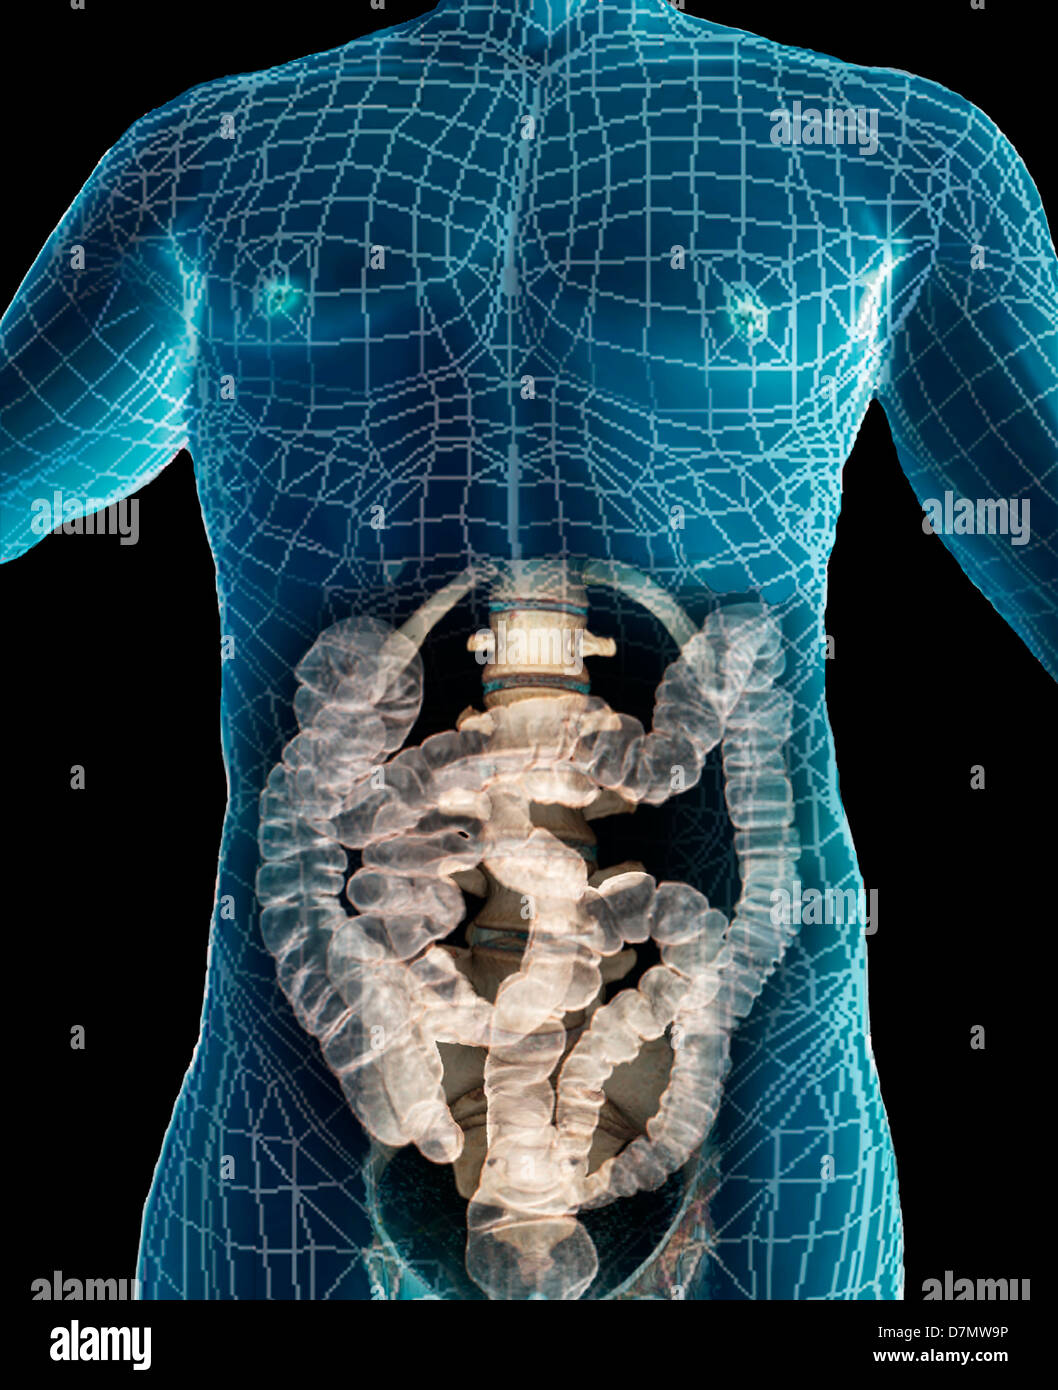 Ct Spine Stock Photos & Ct Spine Stock Images - Alamy